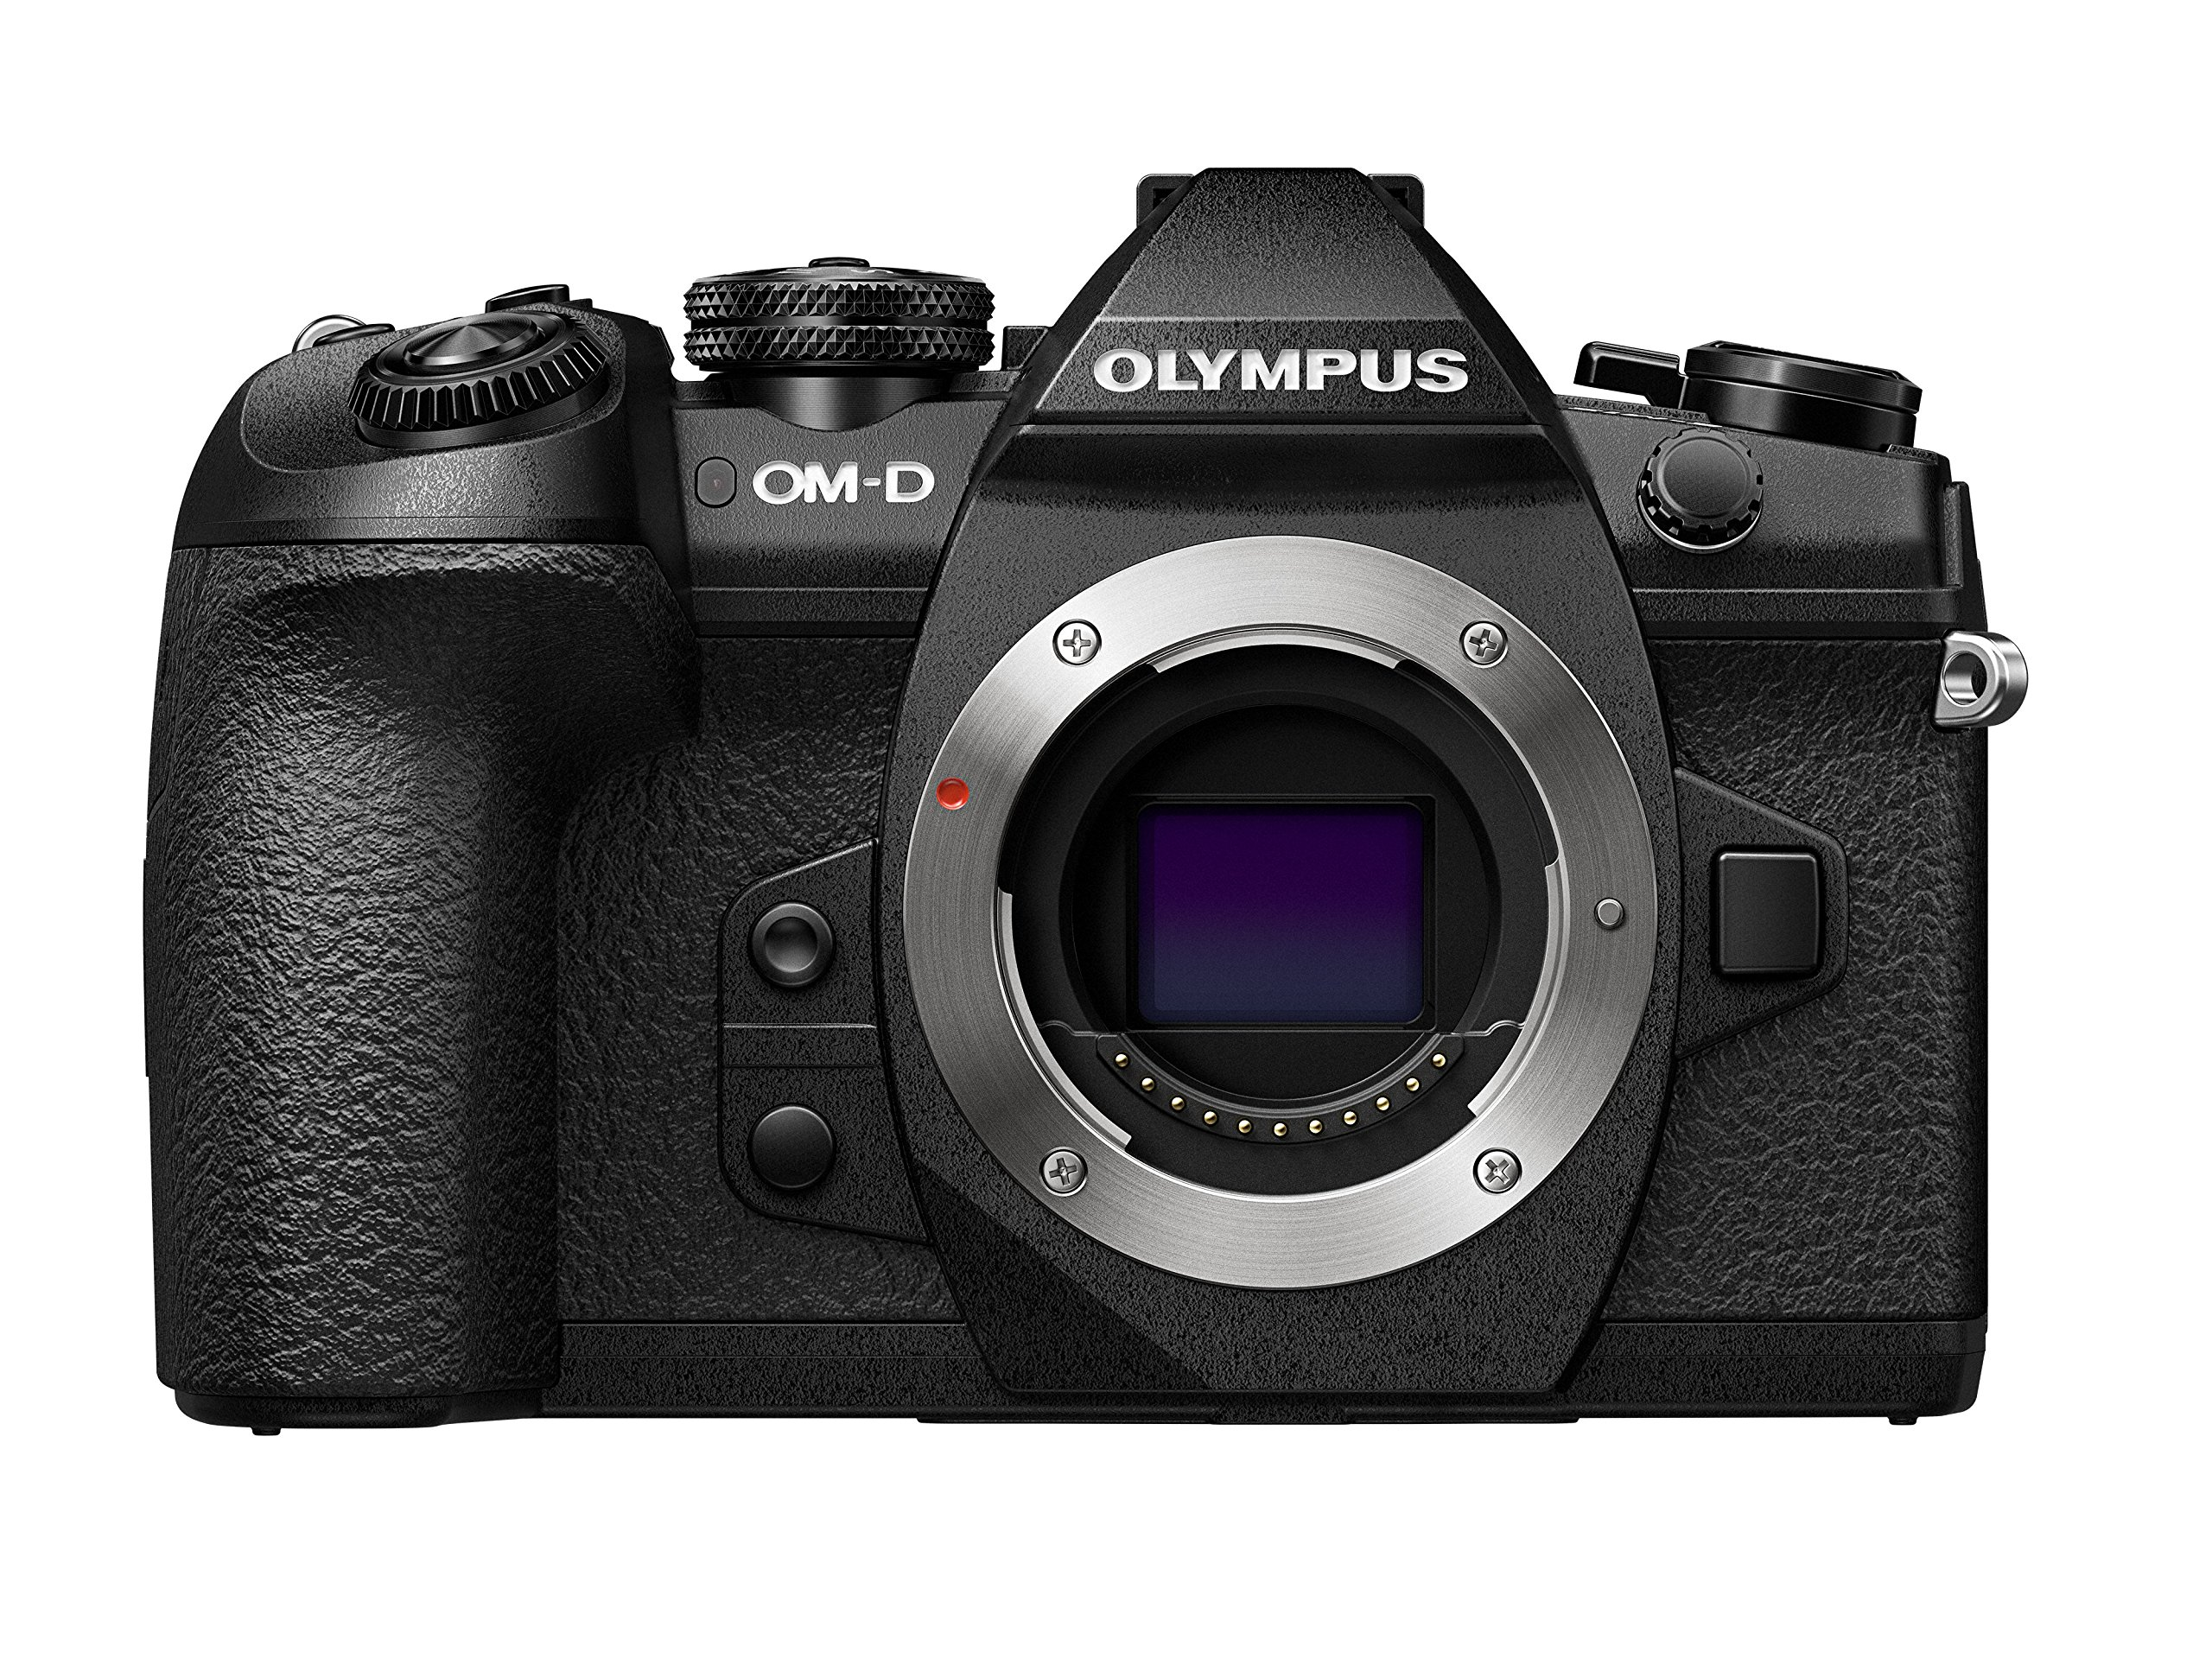 Olympus OM-D E-M1 Mark II 20.4 Megapixel Mirrorless Camera Body Only Black (v207060bu000) by Olympus